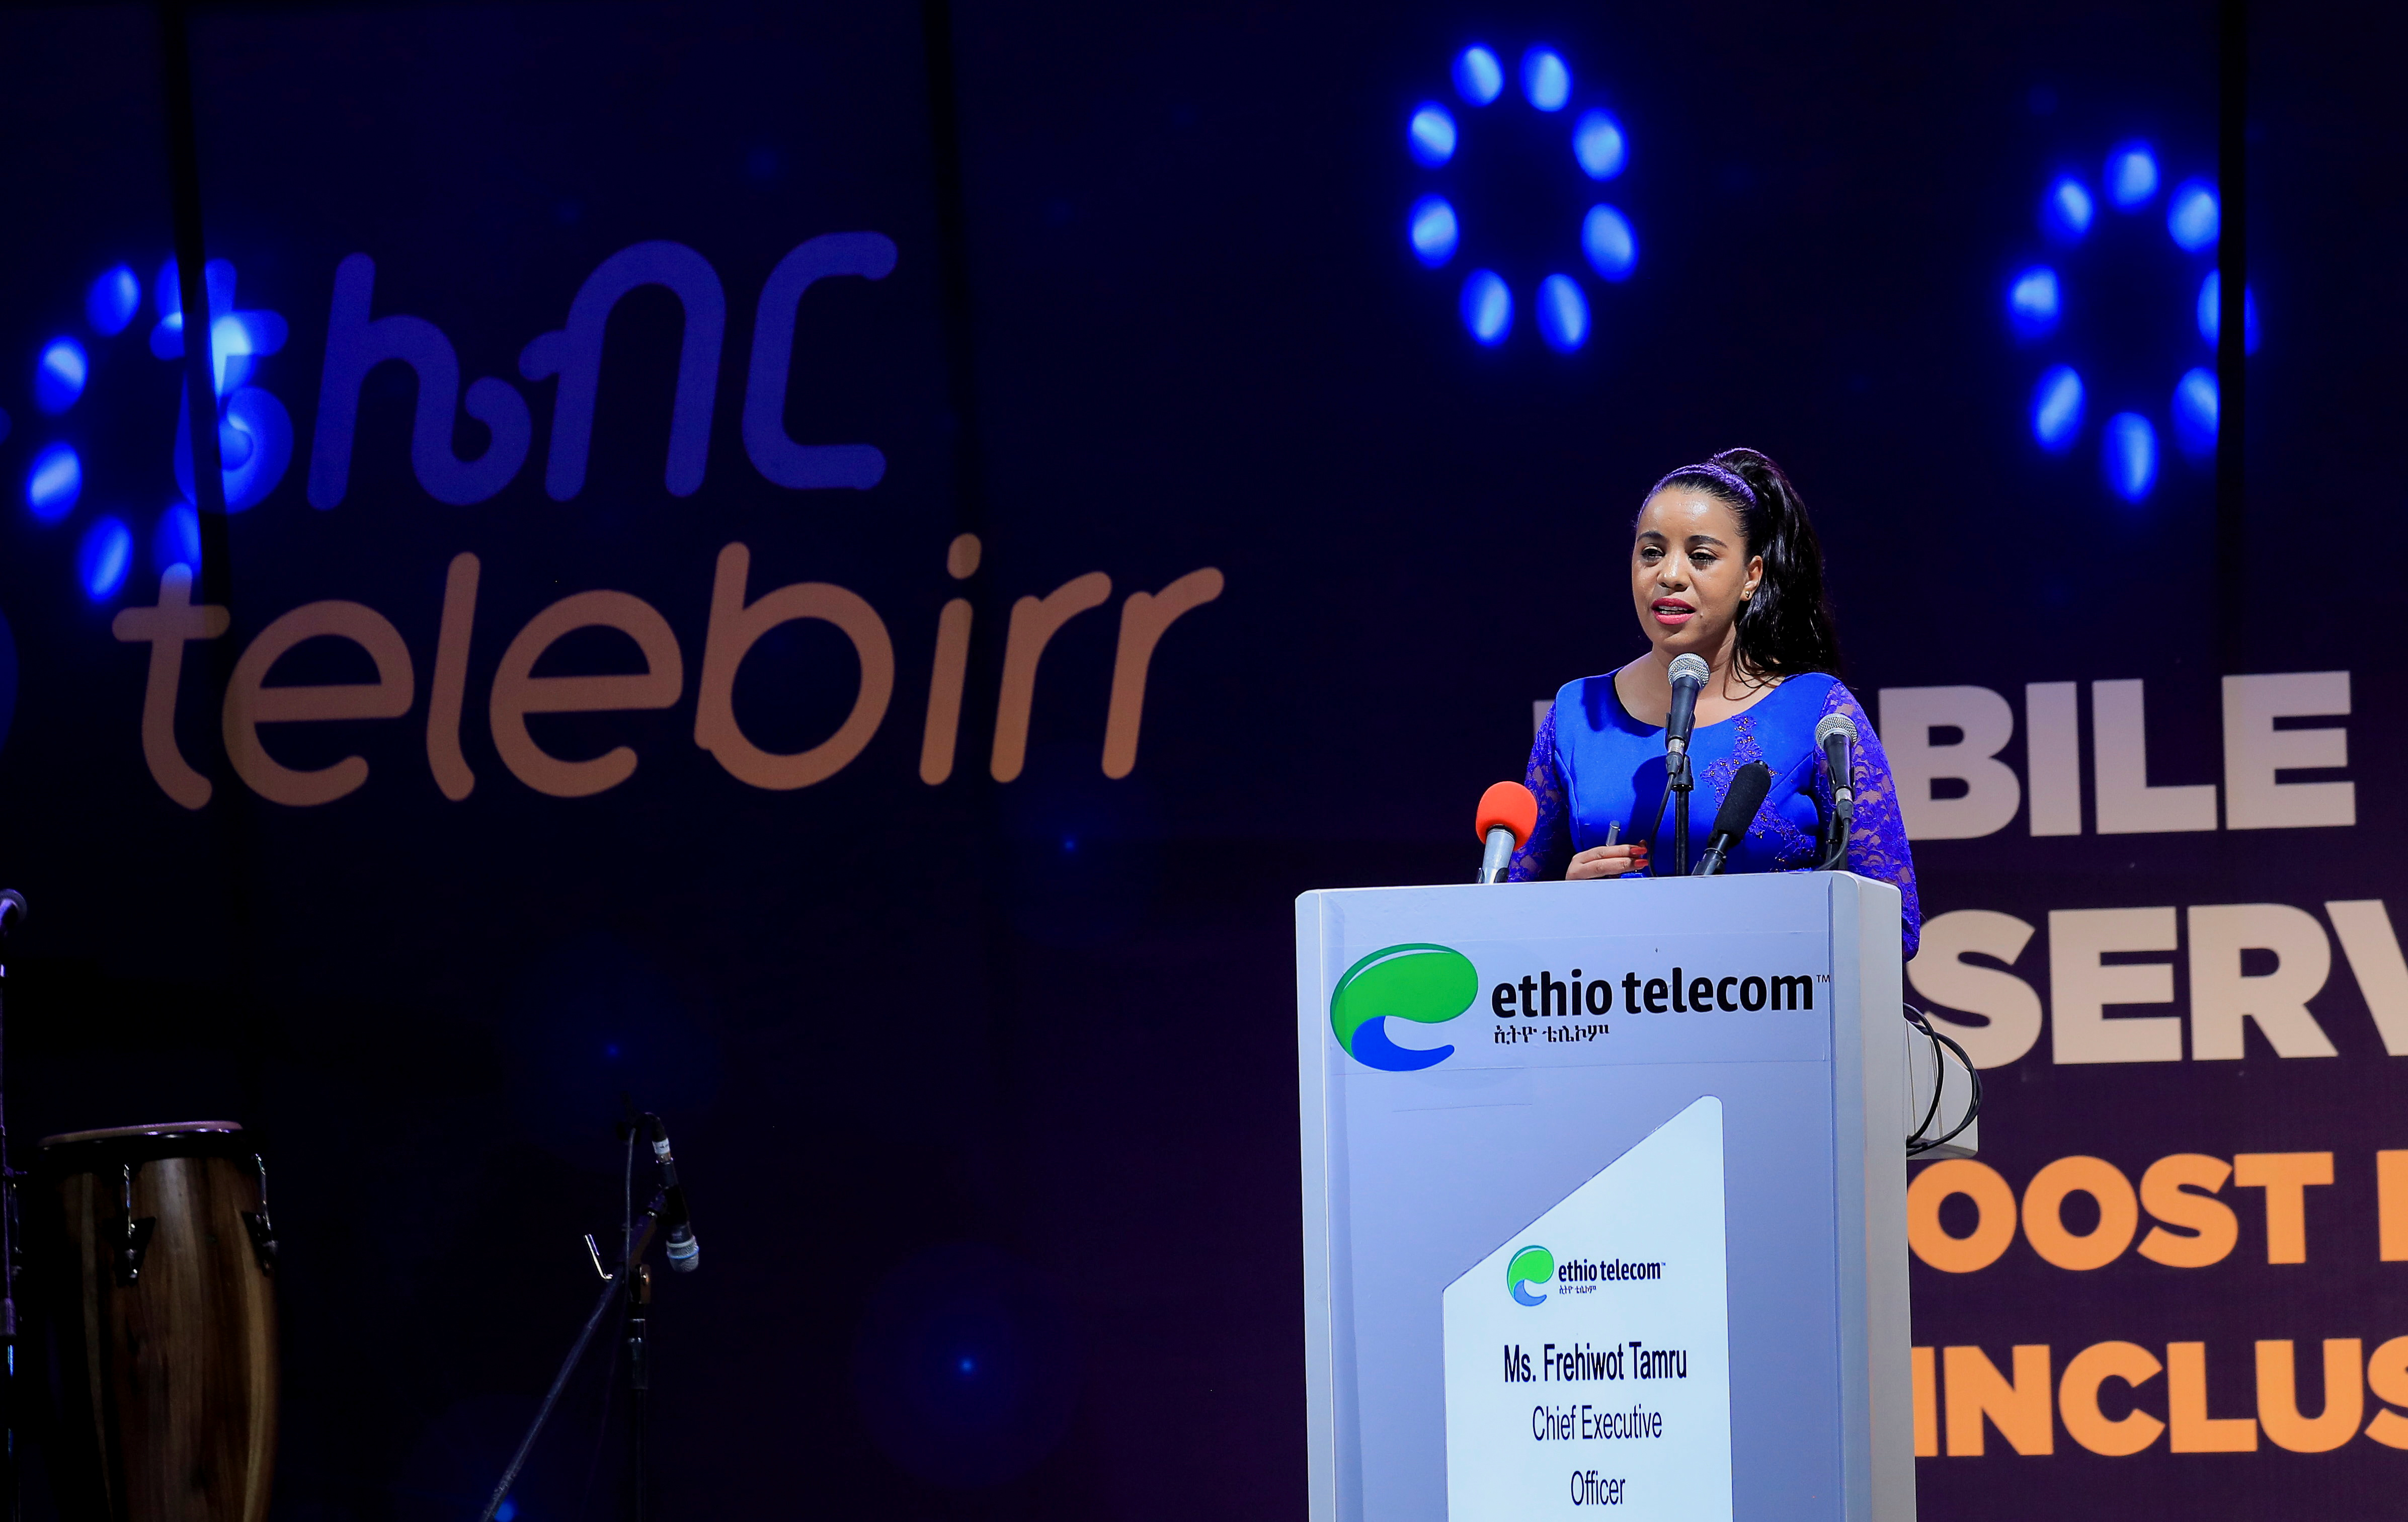 Ethio-Telecom Chief Executive Officer, Frehiwot Tamiru addresses delegates during the launch of a mobile phone-based financial service named Telebirr mobile money service, in Addis Ababa, Ethiopia